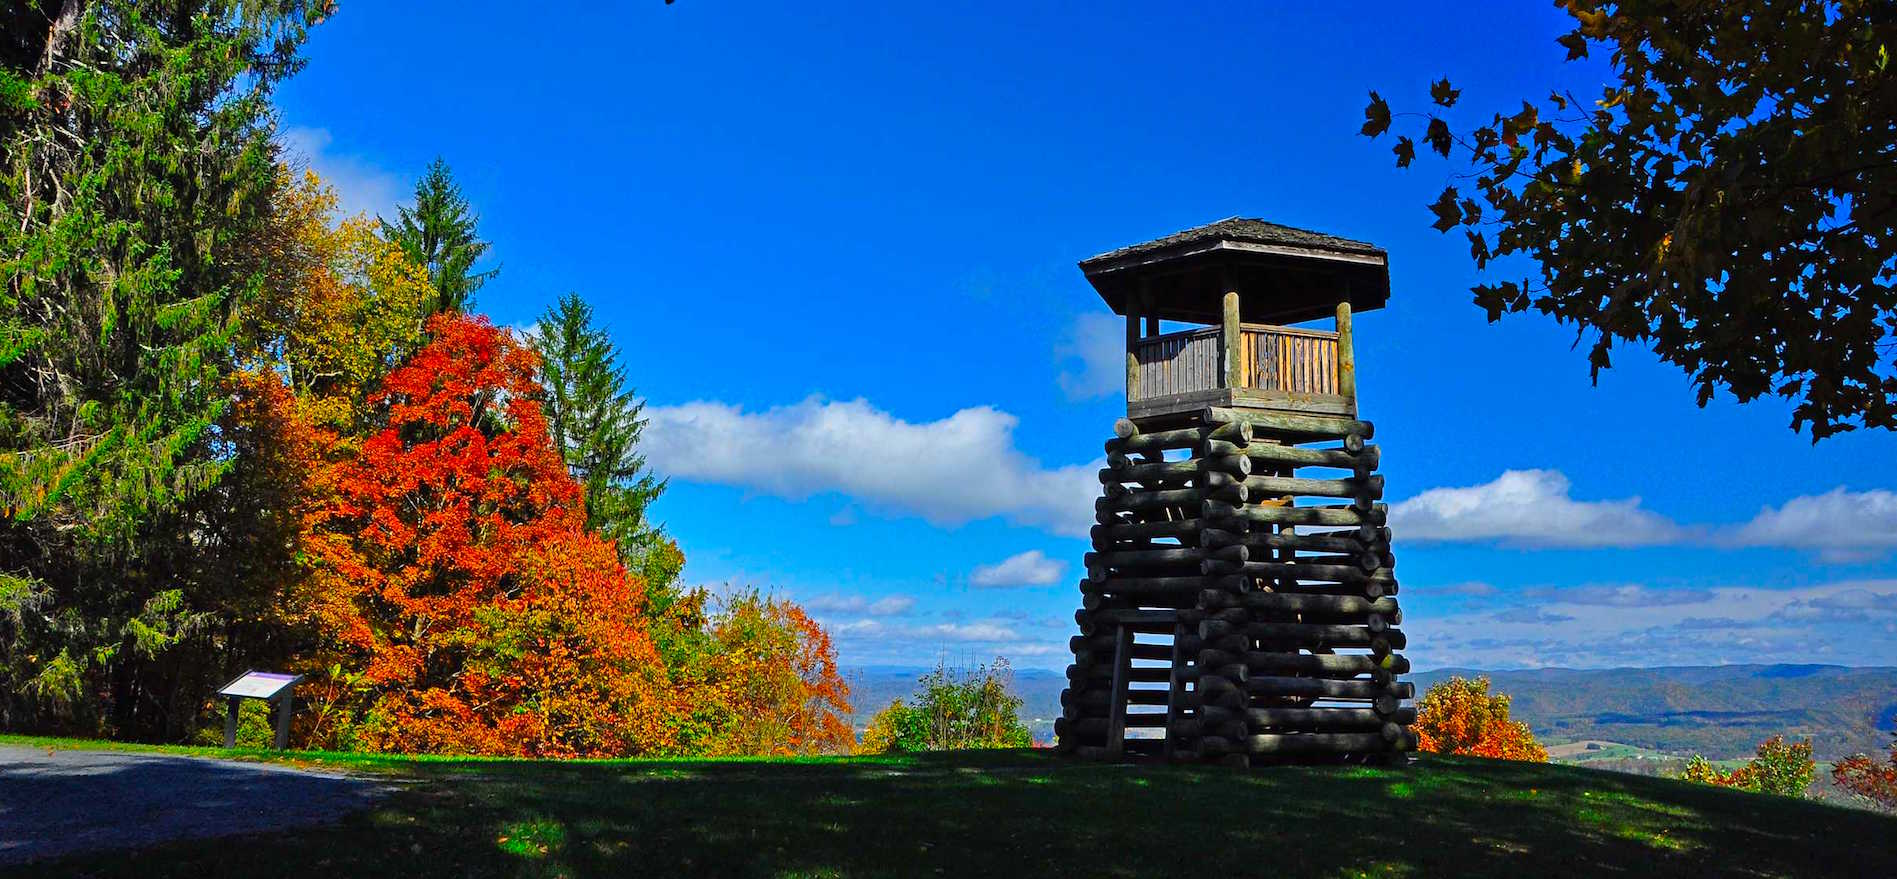 Droop Mountain observation tower